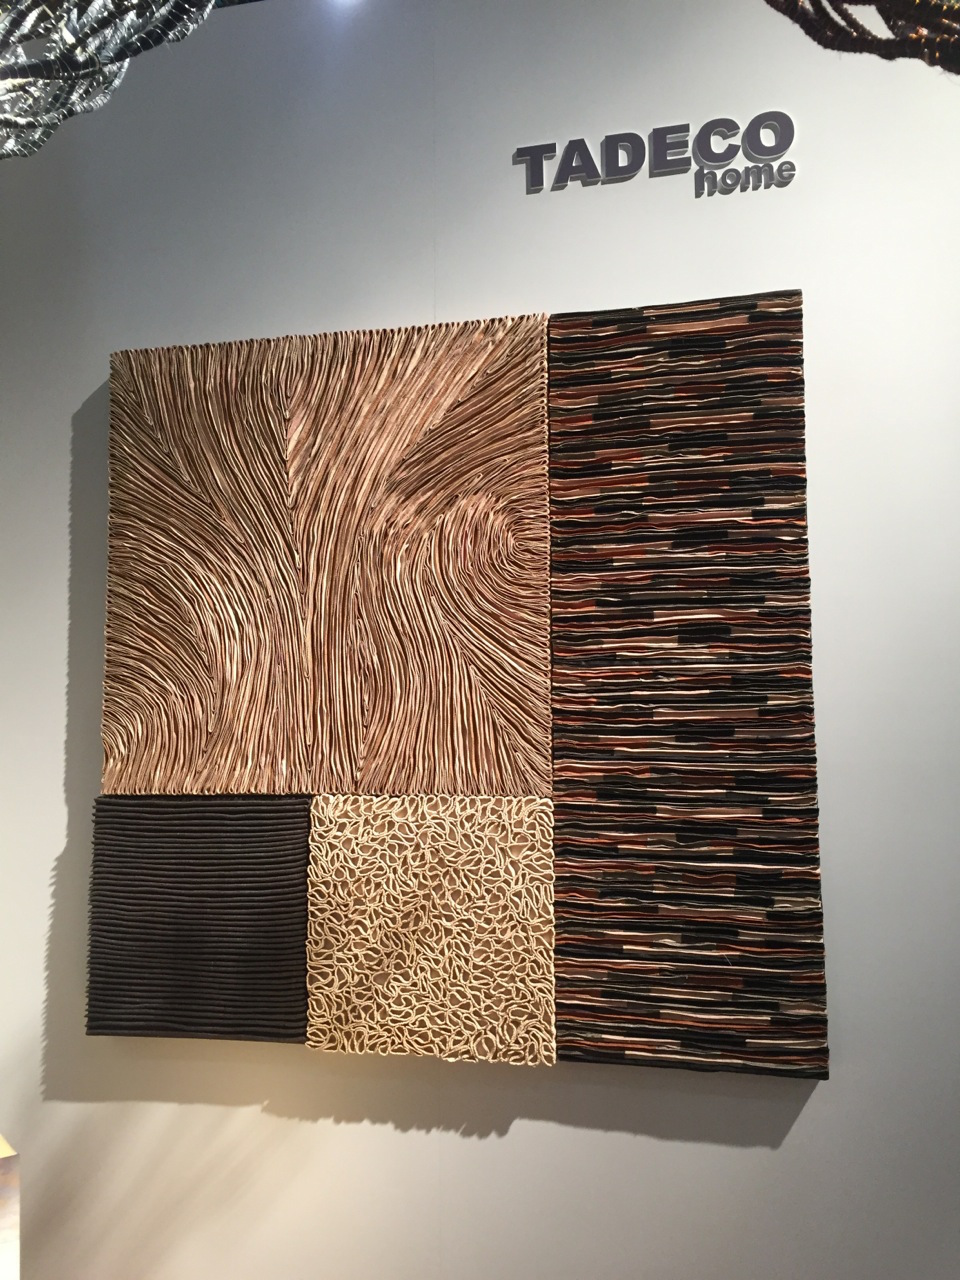 Natural wall tiles, like these from Tadeo Home, can be used as a wall covering or accent to update your decor.